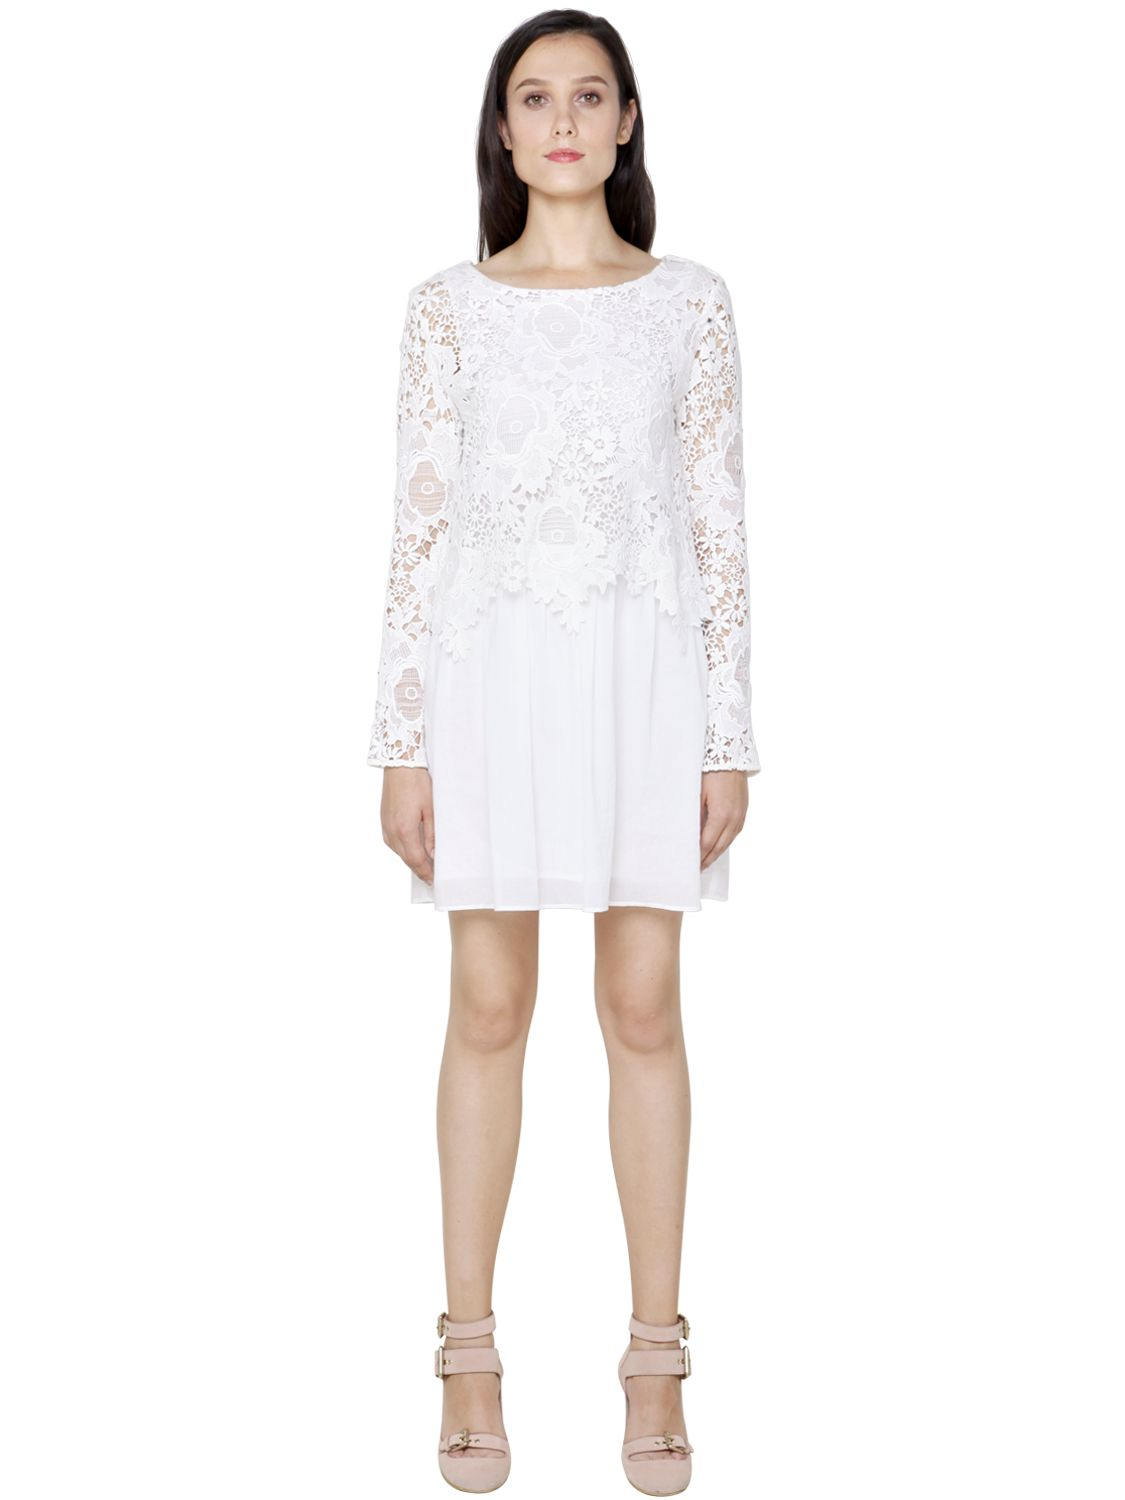 Lace and cotton minidress See By Chlo rqxcKC7